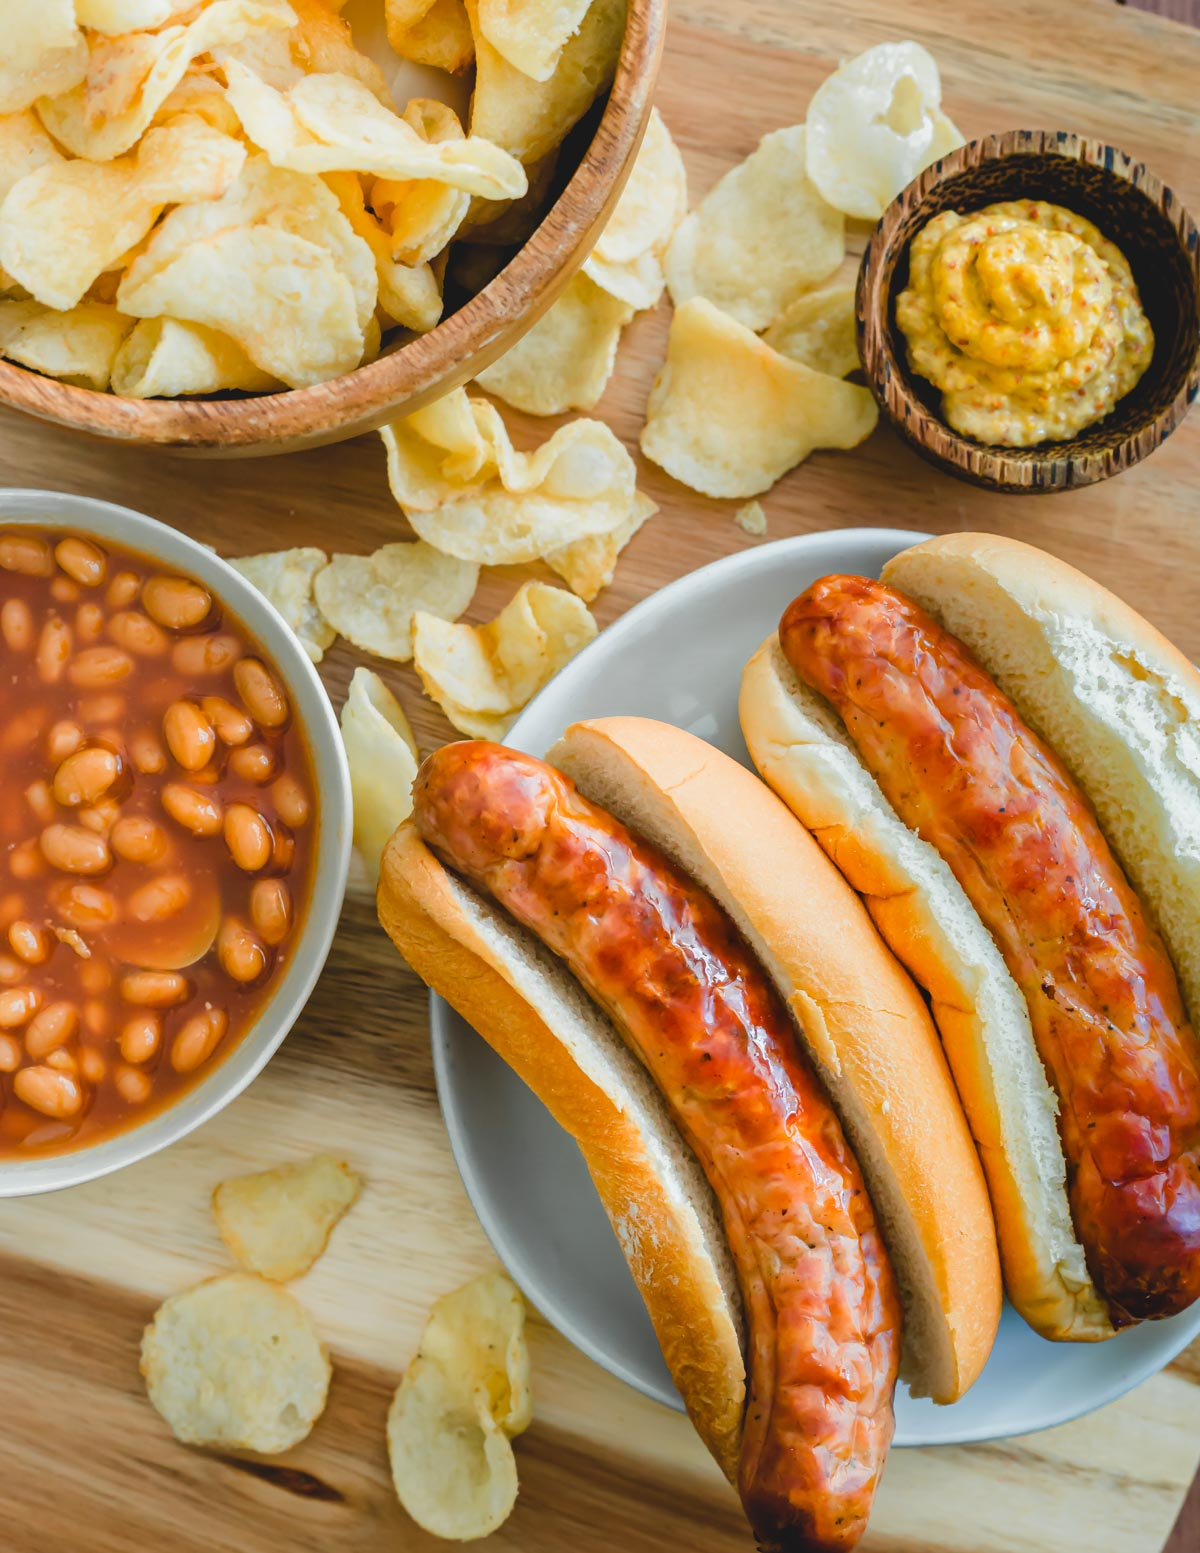 Brats cooked in the air fryer in buns with baked beans and potato chips.